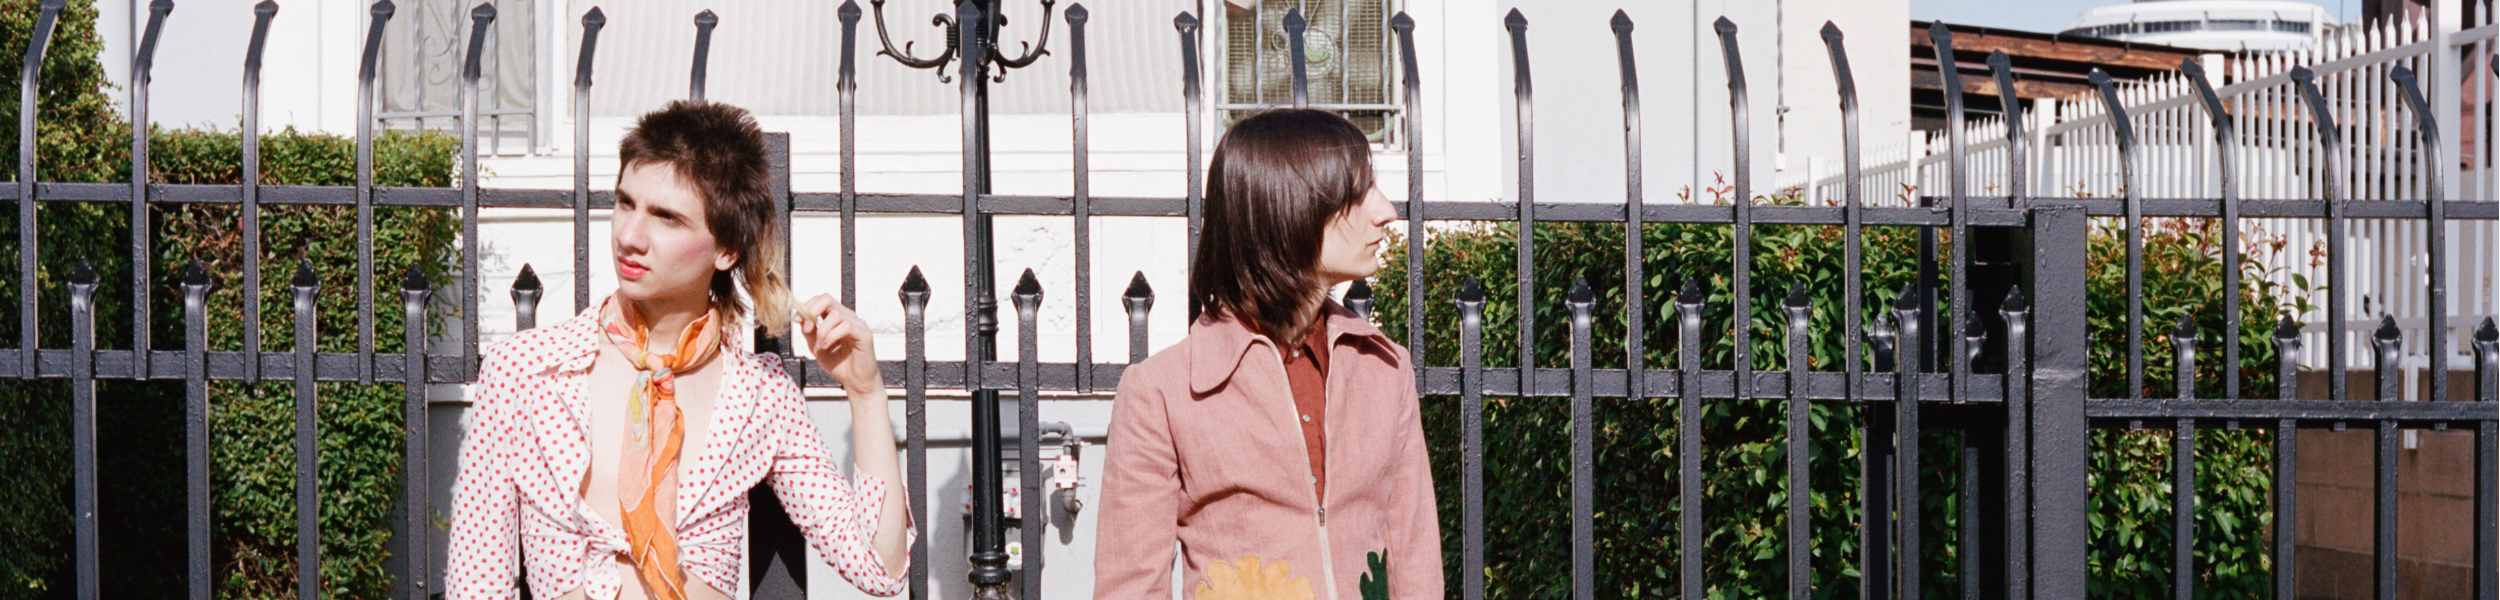 The Lemon Twigs - Debut Album Details, Plus 'These Words' Video